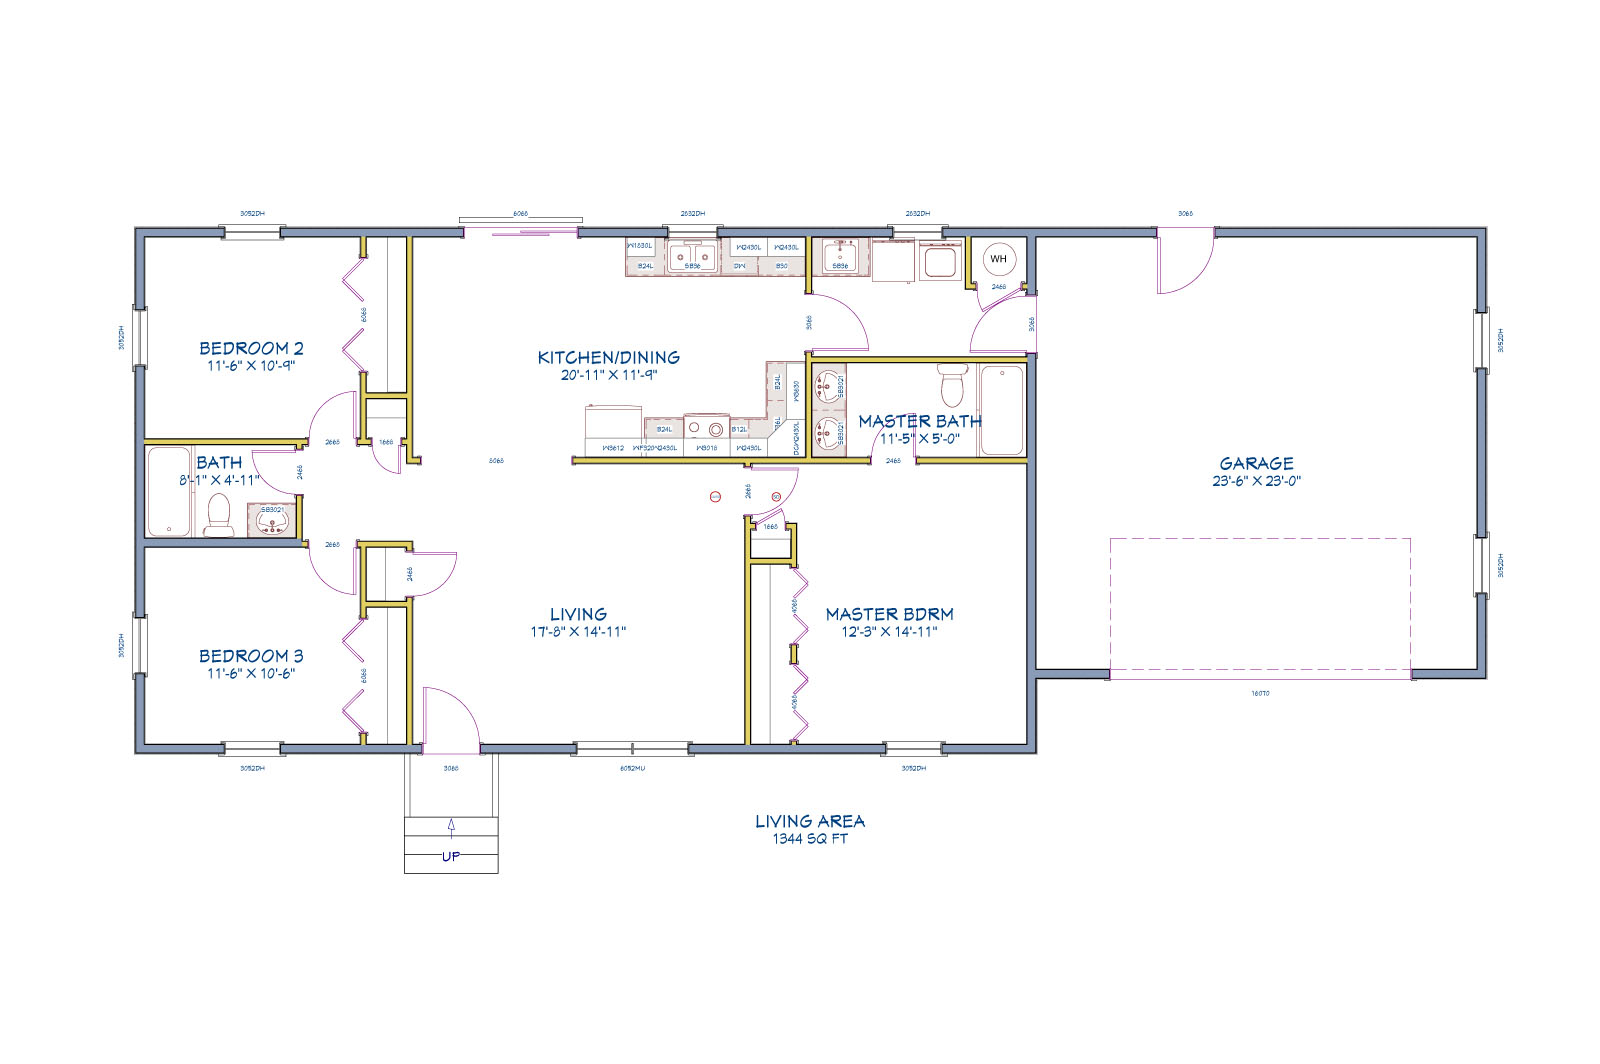 Residential blueprint for three bedroom home